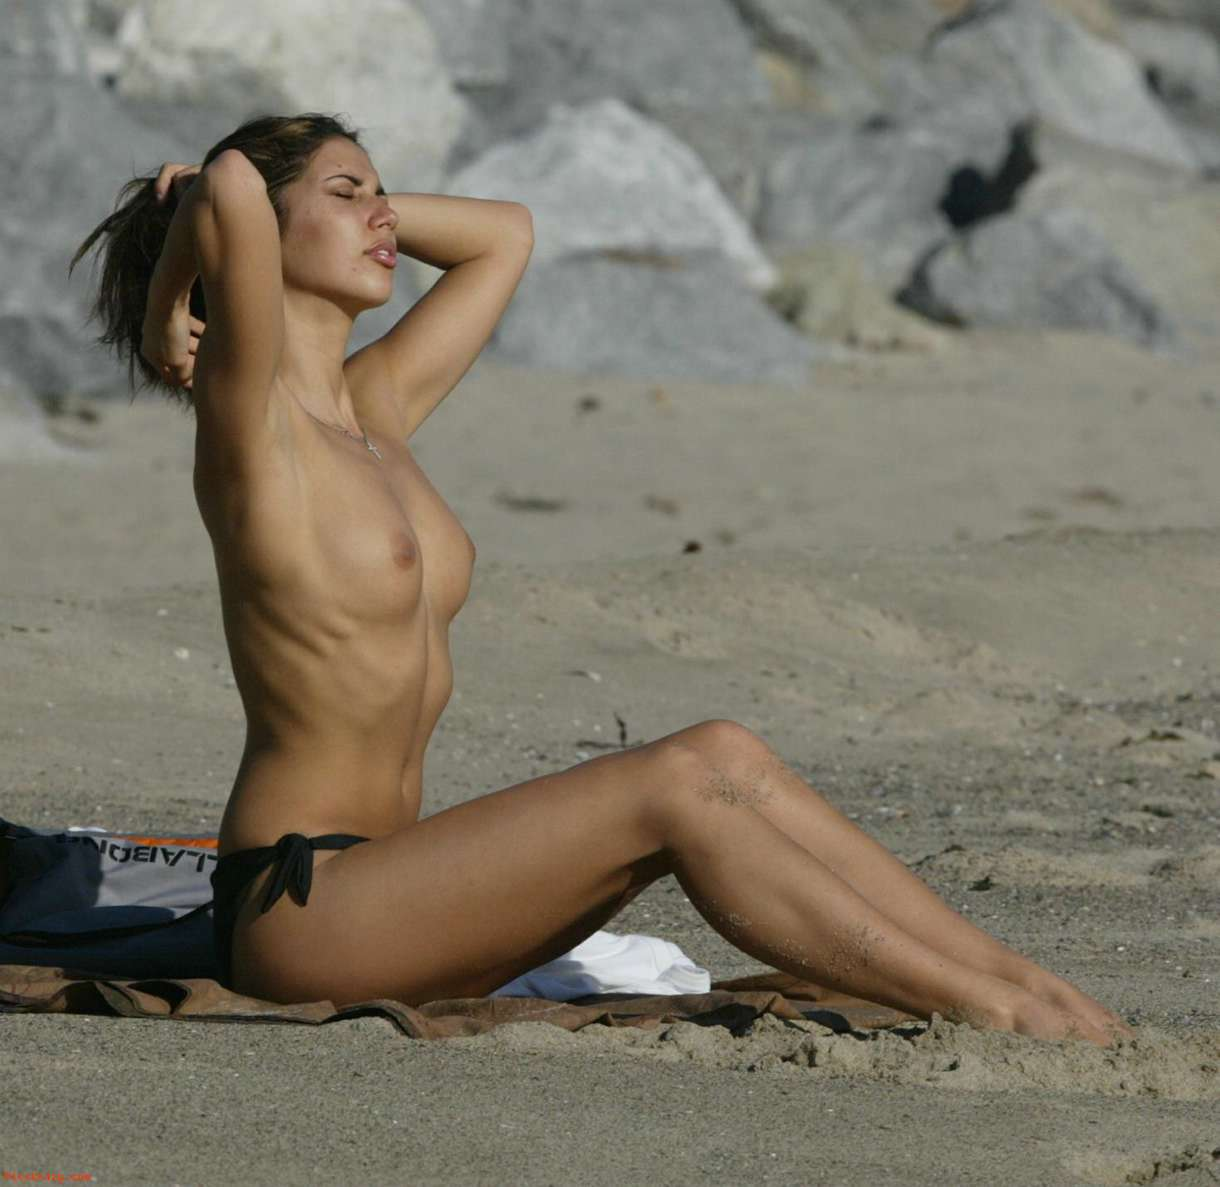 Opinion obvious. Relaxing in nude beach seems brilliant